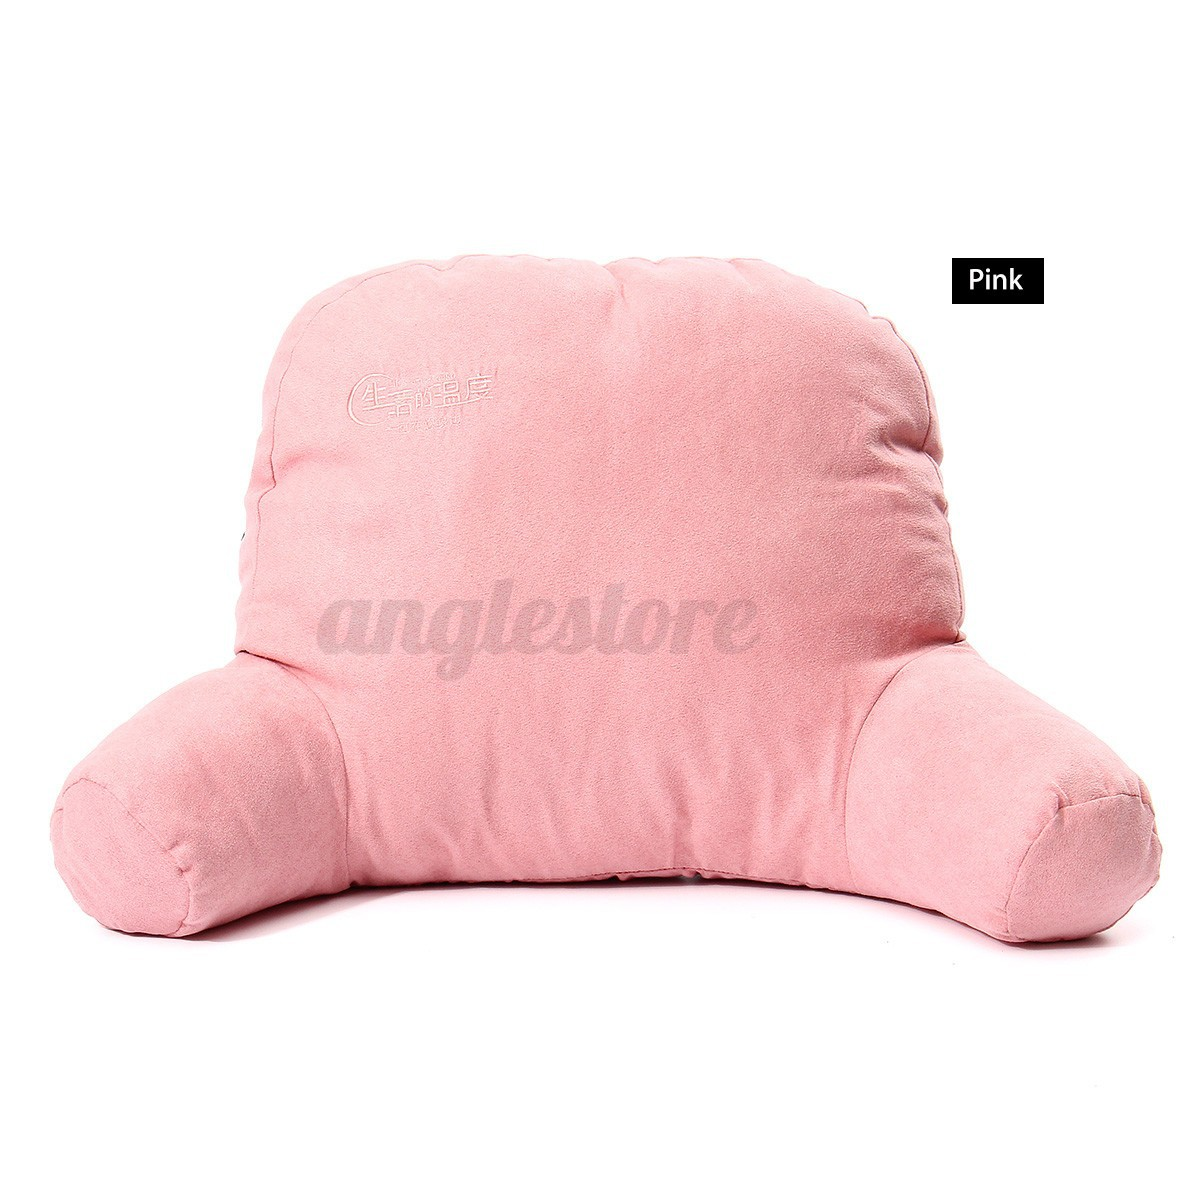 bed rest back pillow arm soft cushion support chair bedroom tv relax reading ebay. Black Bedroom Furniture Sets. Home Design Ideas